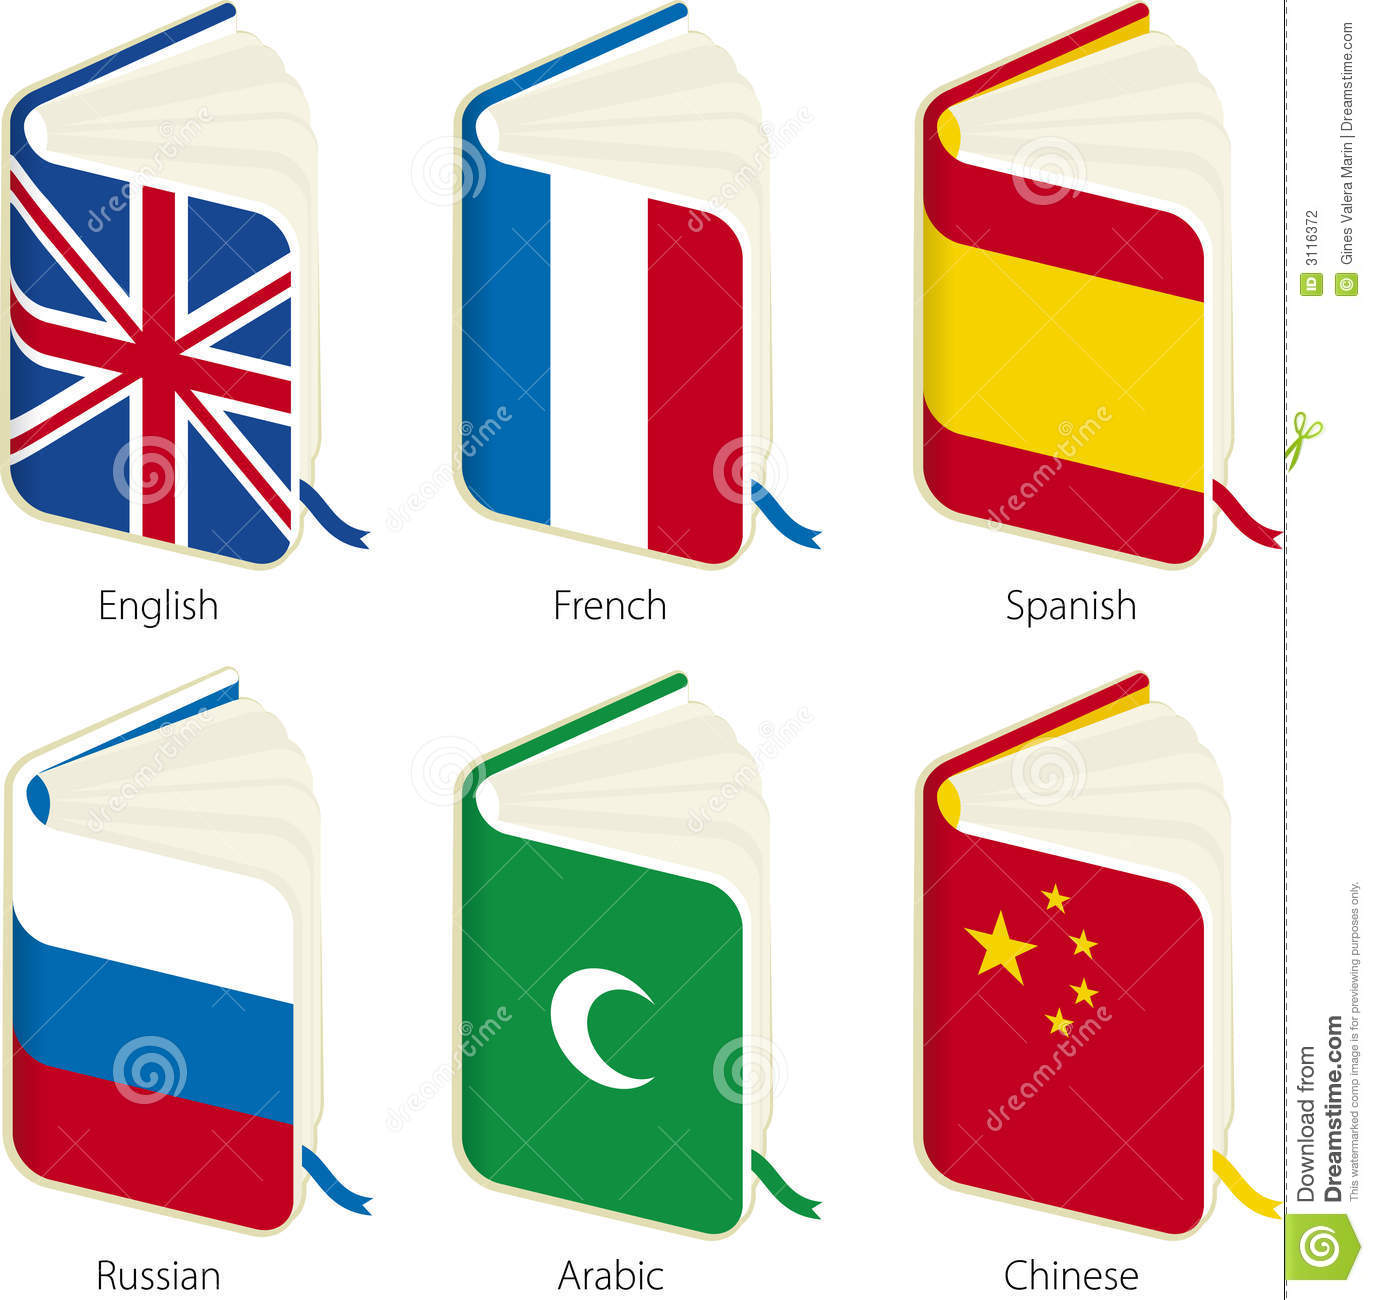 online document translation french to english